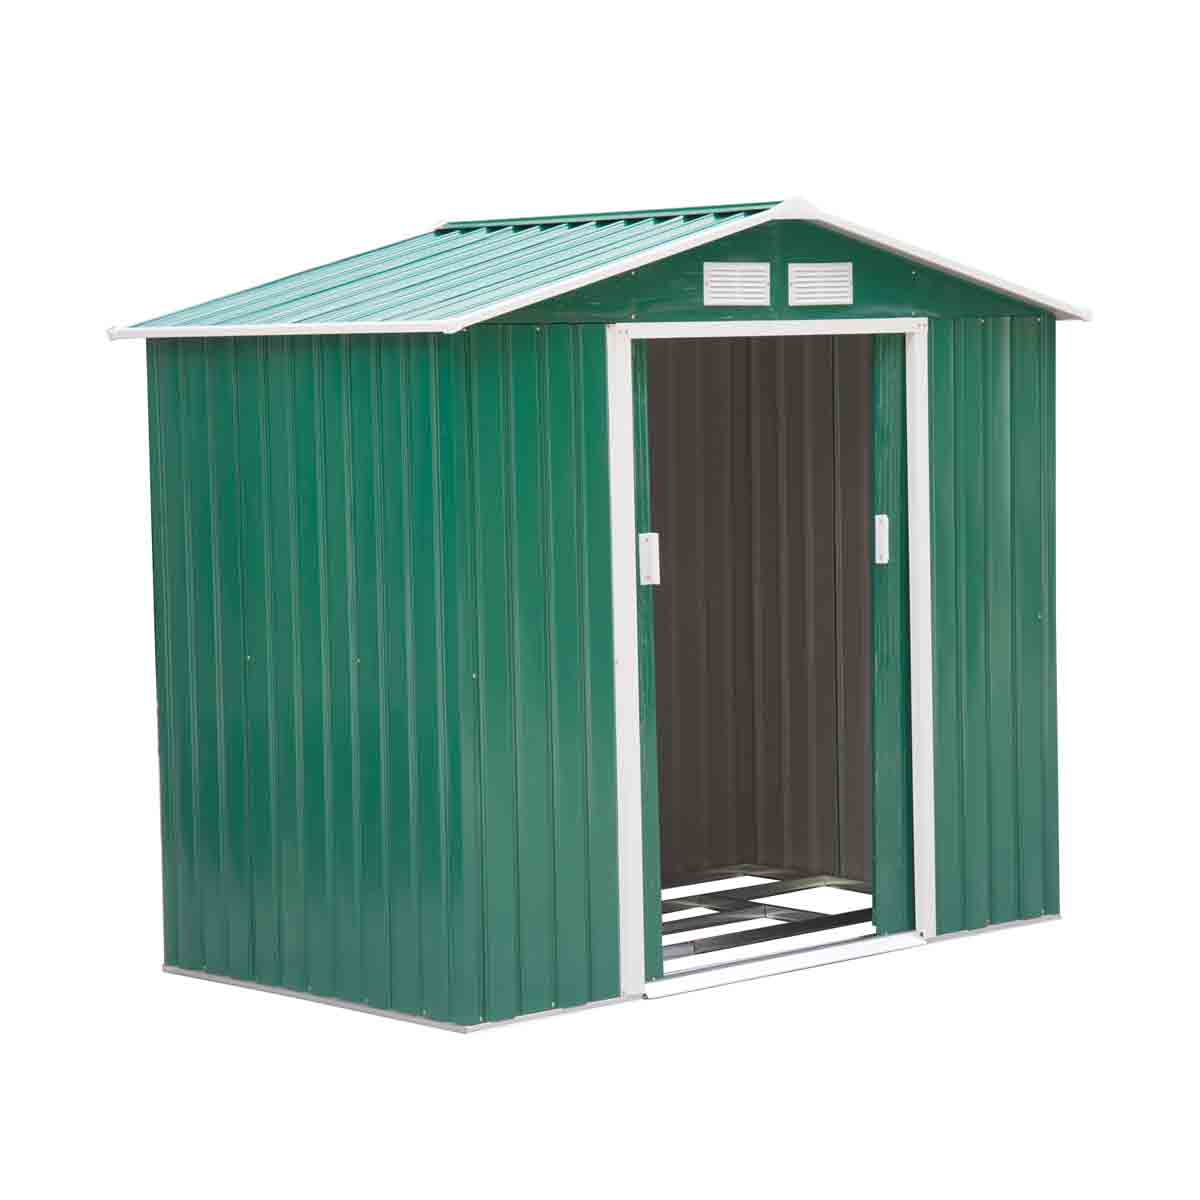 Outsunny 7' x 4' Metal Apex Storage Shed - Green